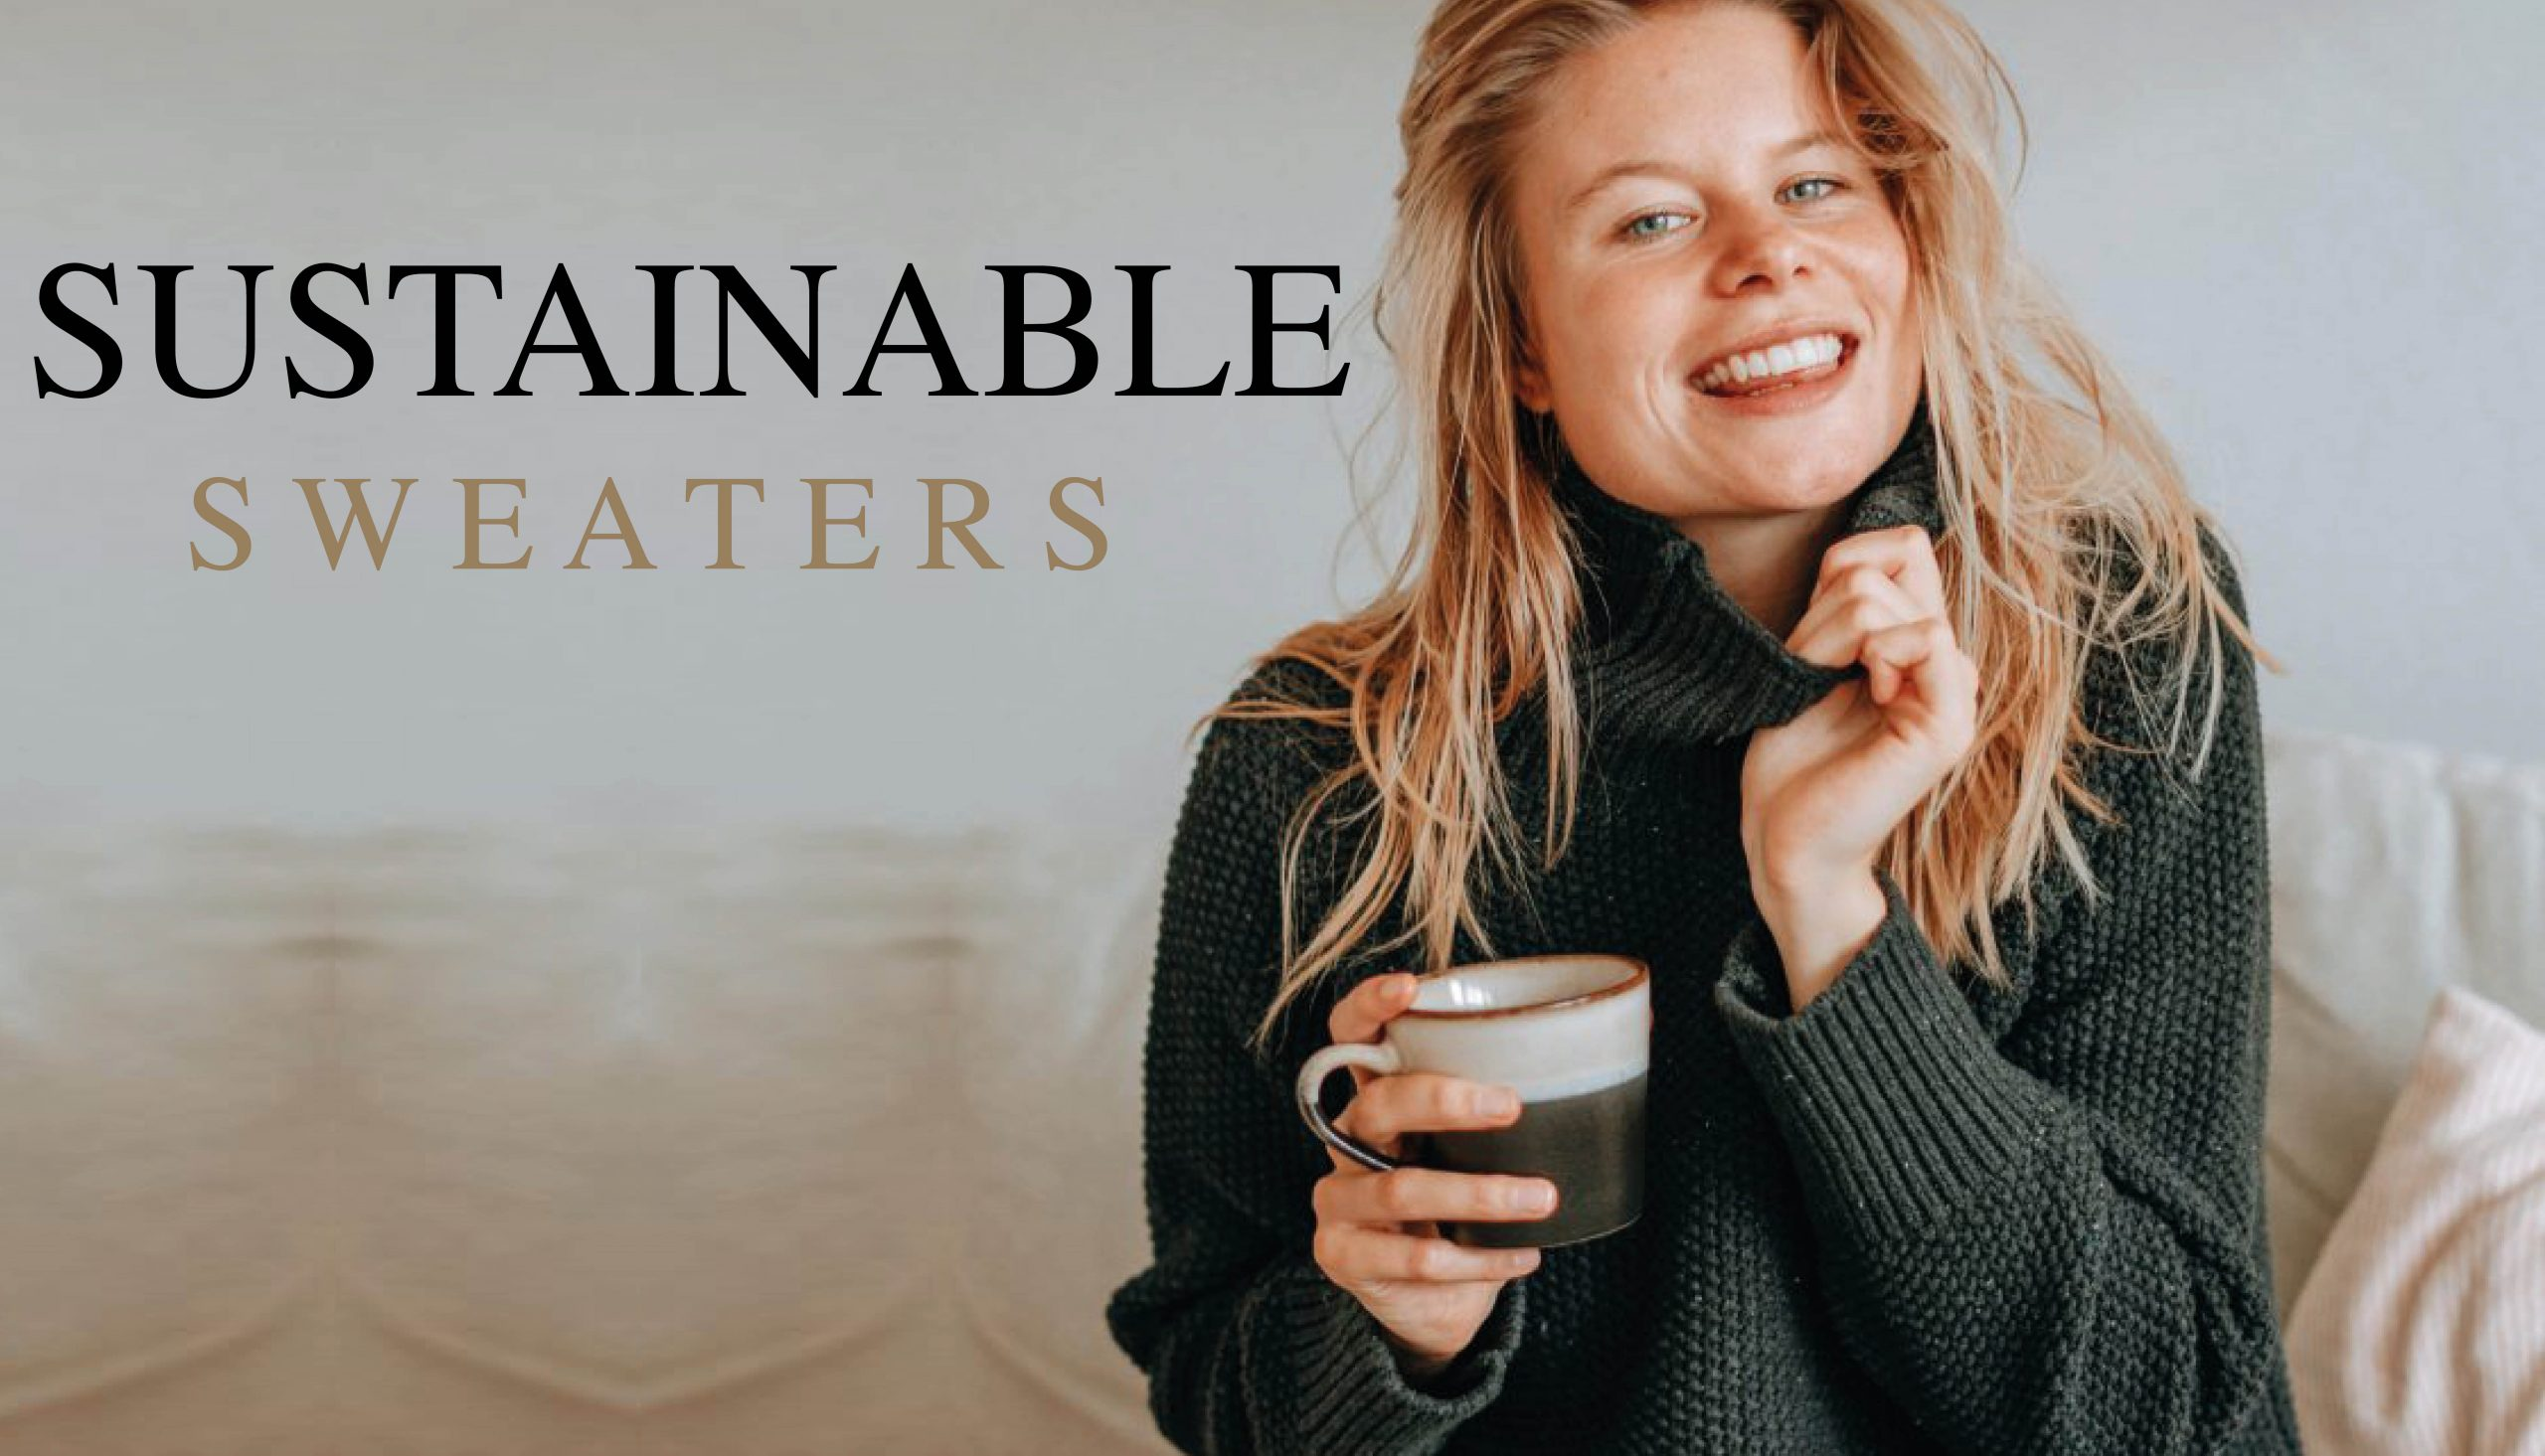 SUSTAINABLE SWEATERS